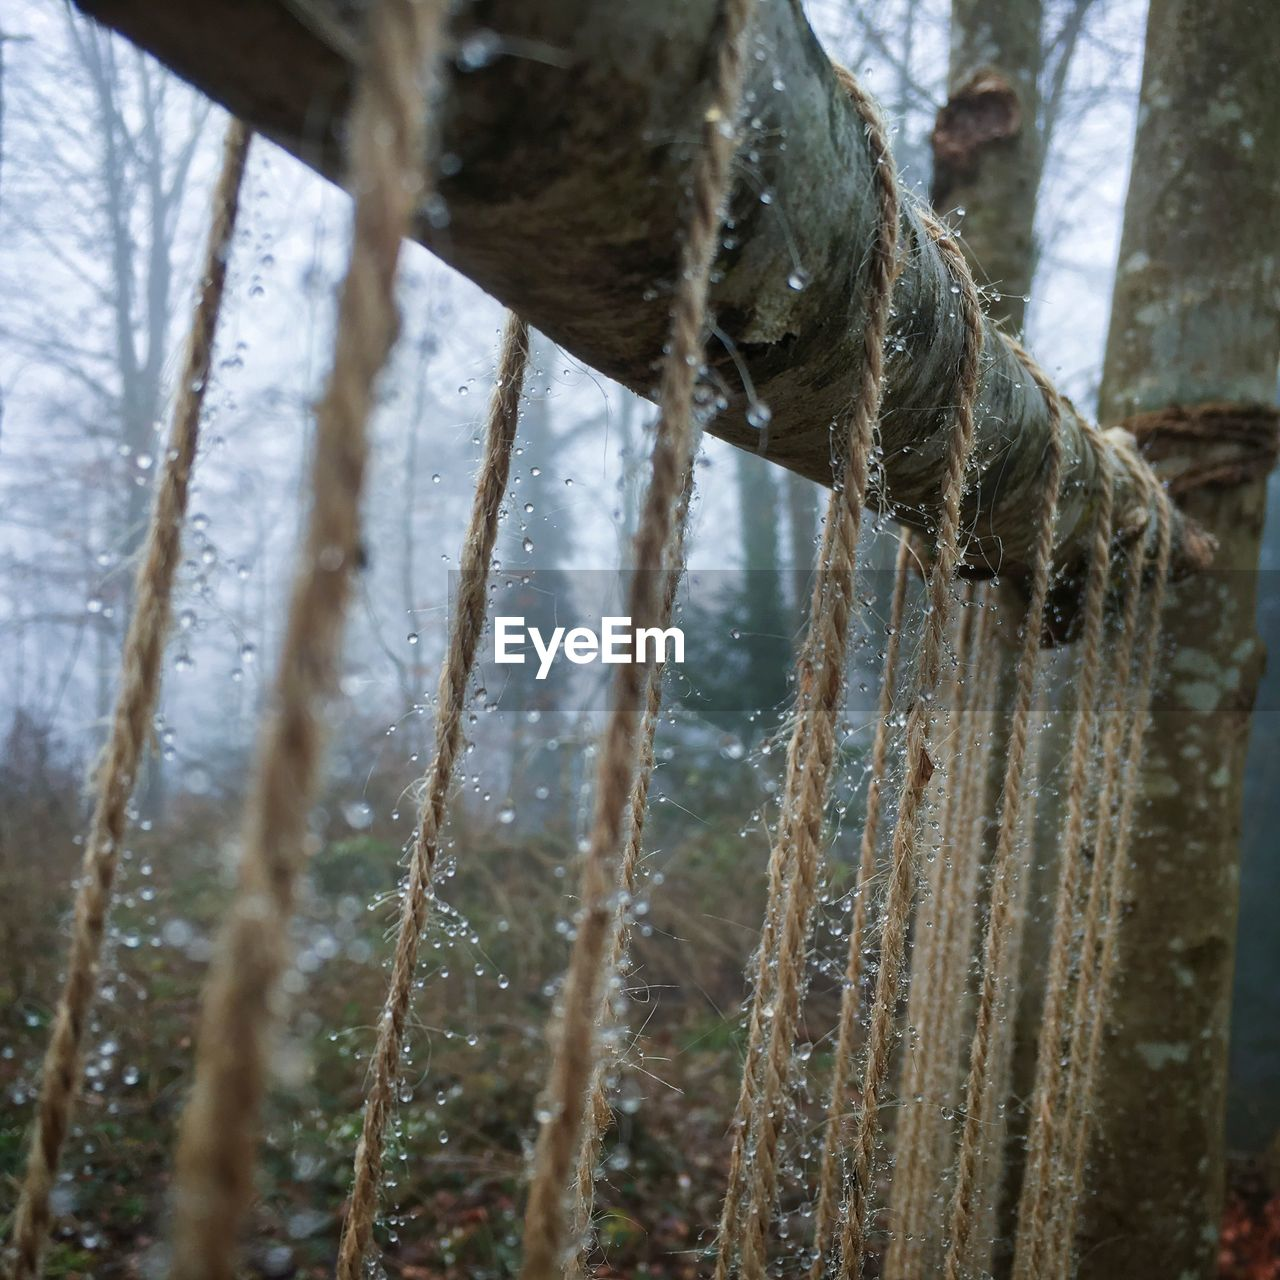 focus on foreground, close-up, day, no people, plant, nature, selective focus, land, tree, outdoors, rope, growth, tree trunk, trunk, hanging, strength, frozen, winter, weathered, ice, icicle, flowing water